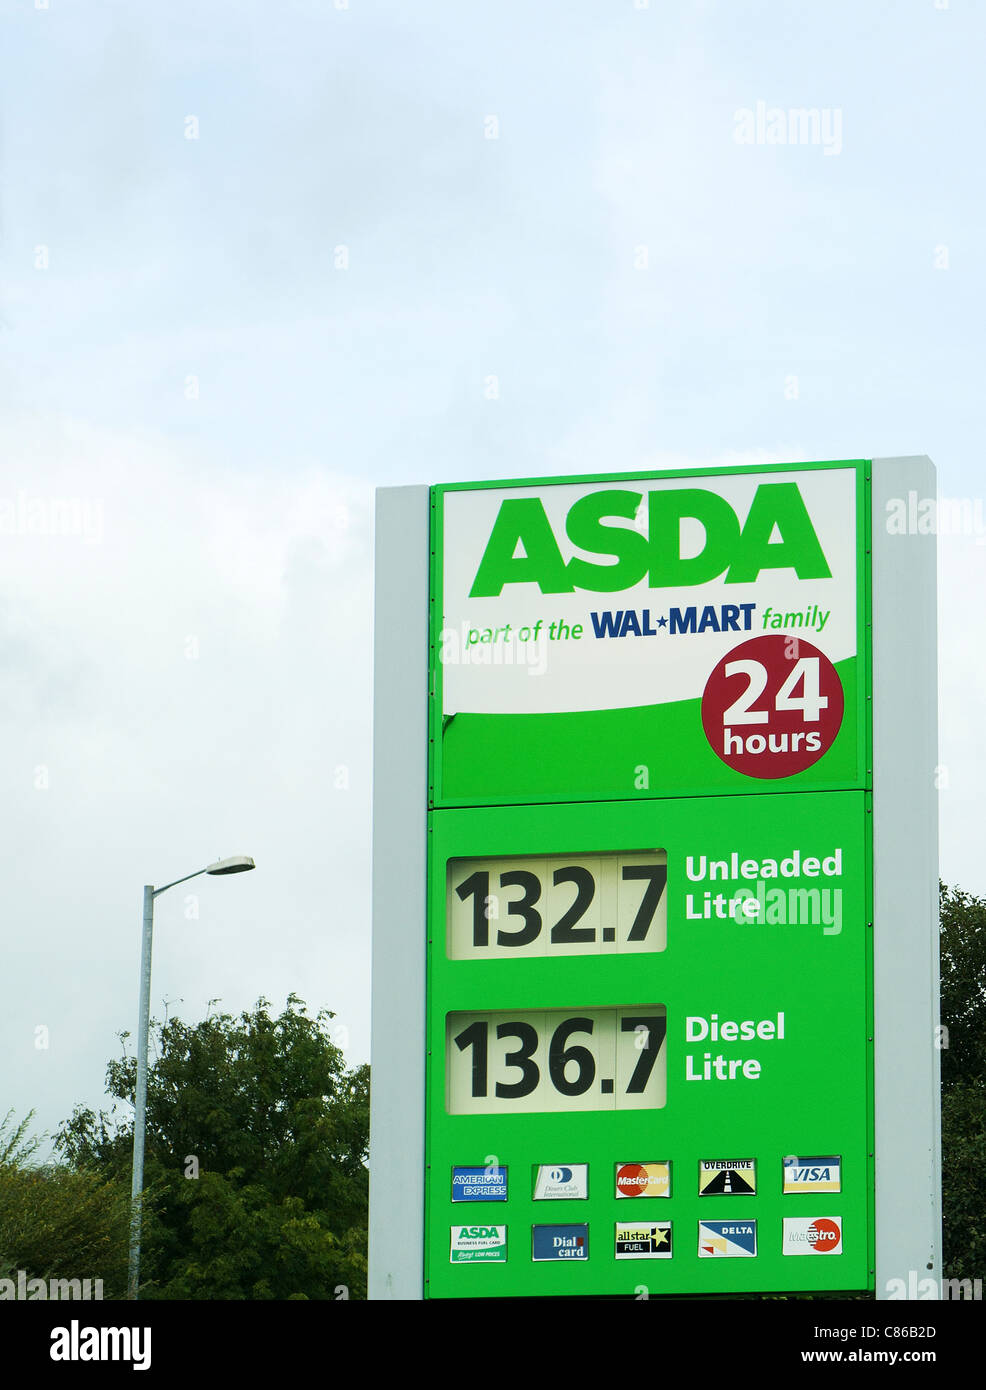 A fuel price sign at an asda store filling station, cornwall, uk - Stock Image